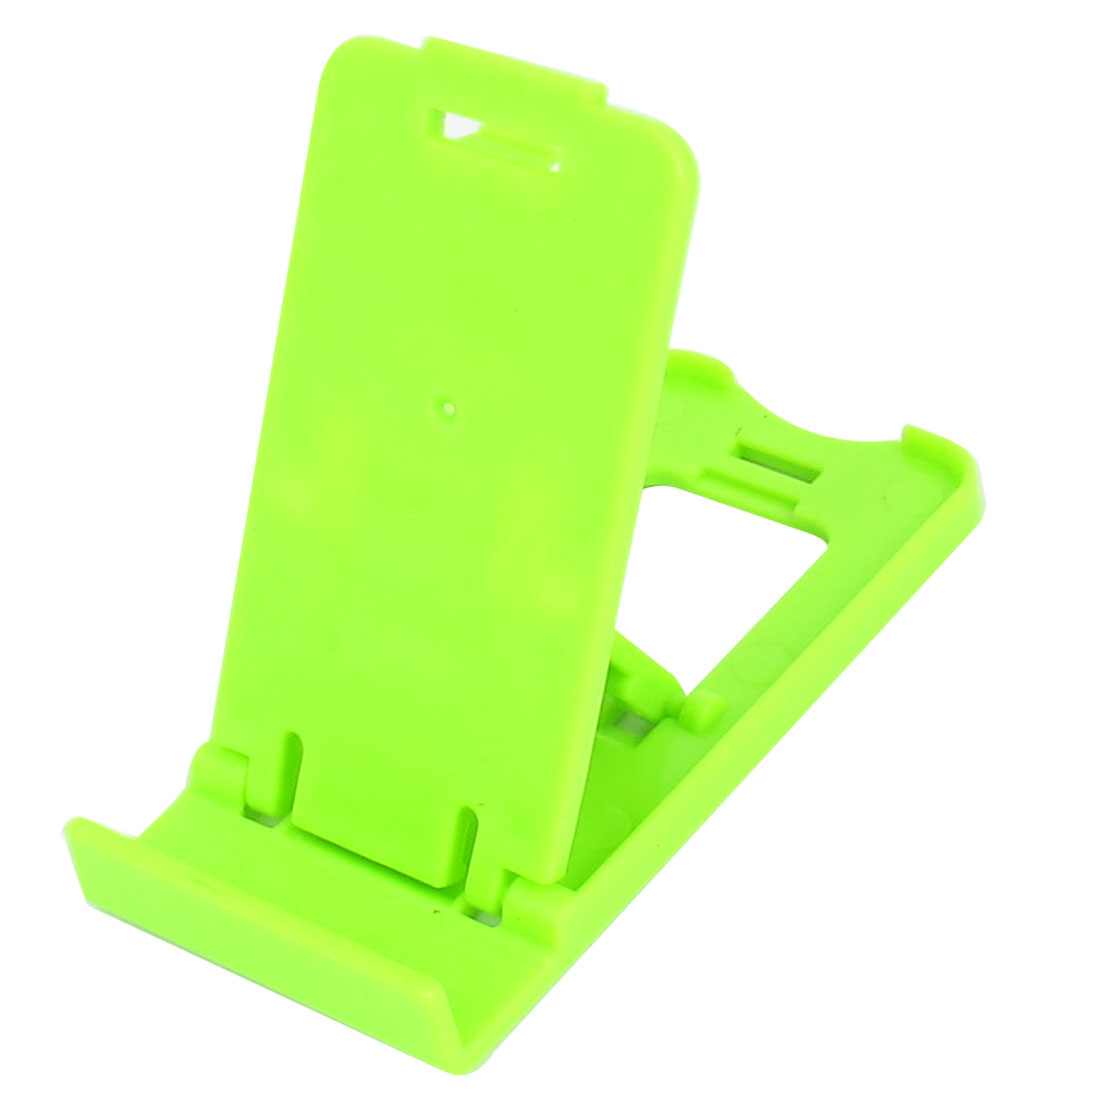 Green Plastic Foldable Desk Desktop Stand Holder Stander Support for MP4 iPad iPhone Cell Phone